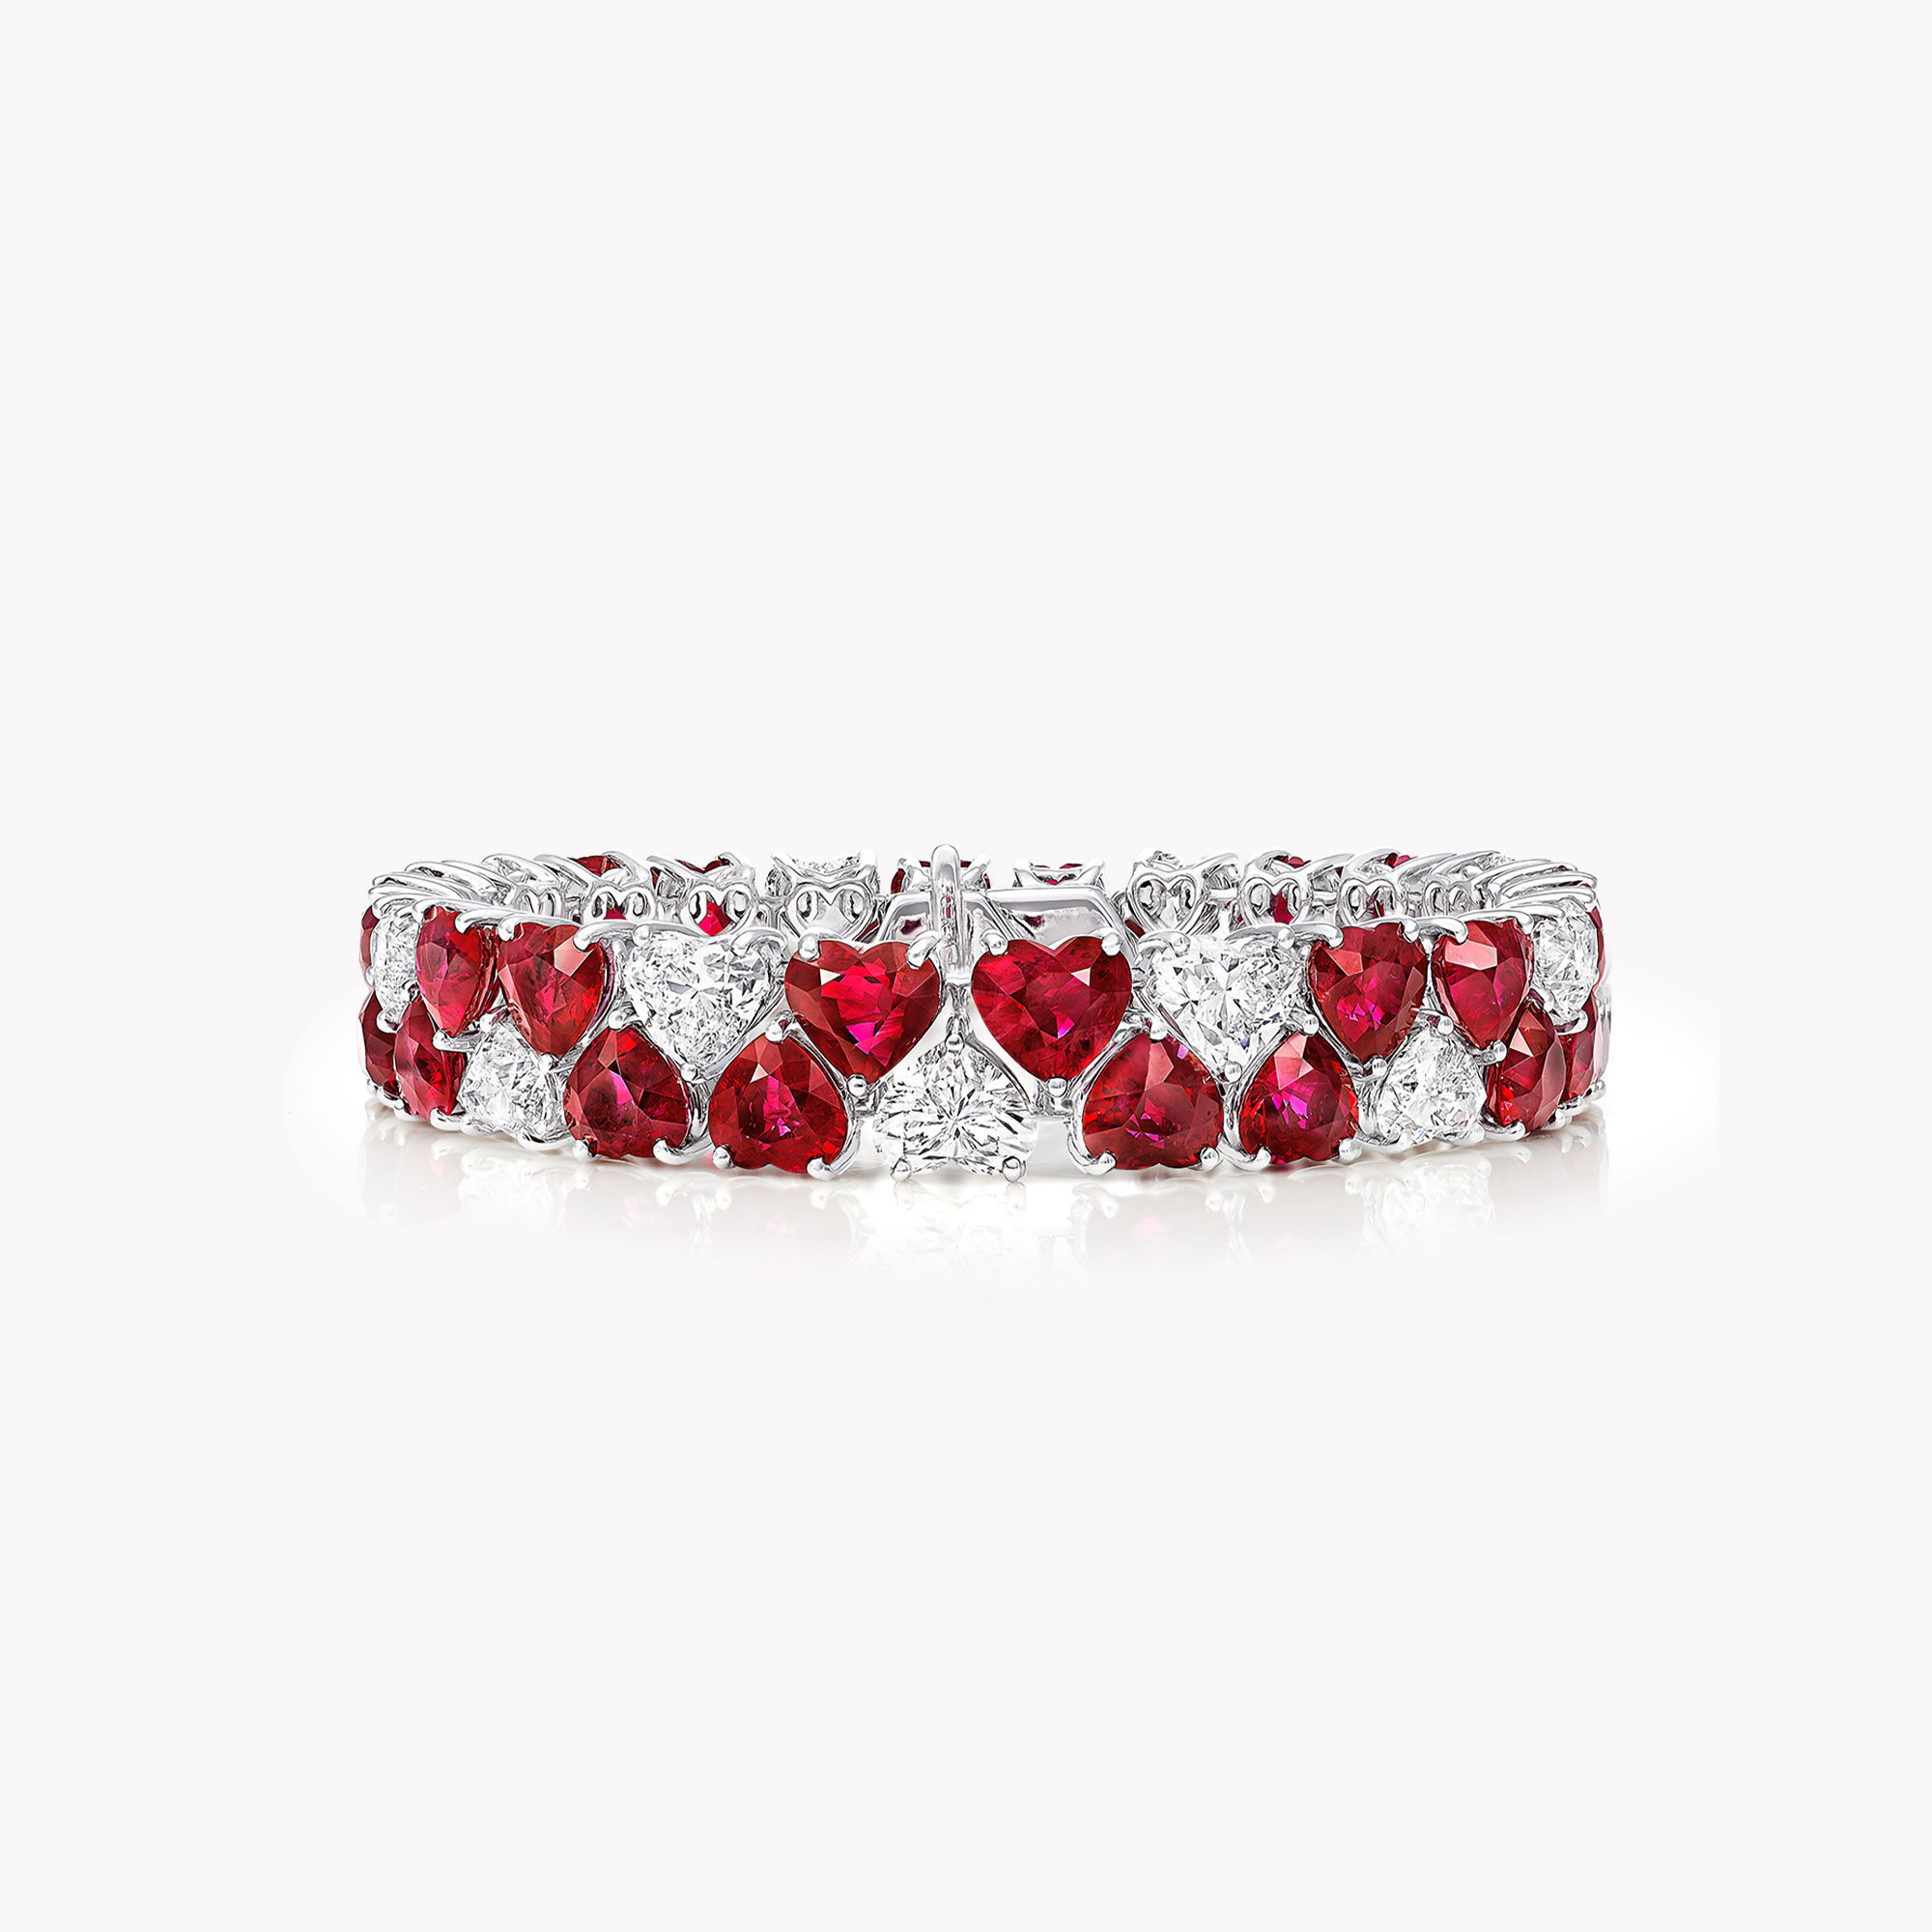 A Graff ruby and white diamond high jewellery bracelet